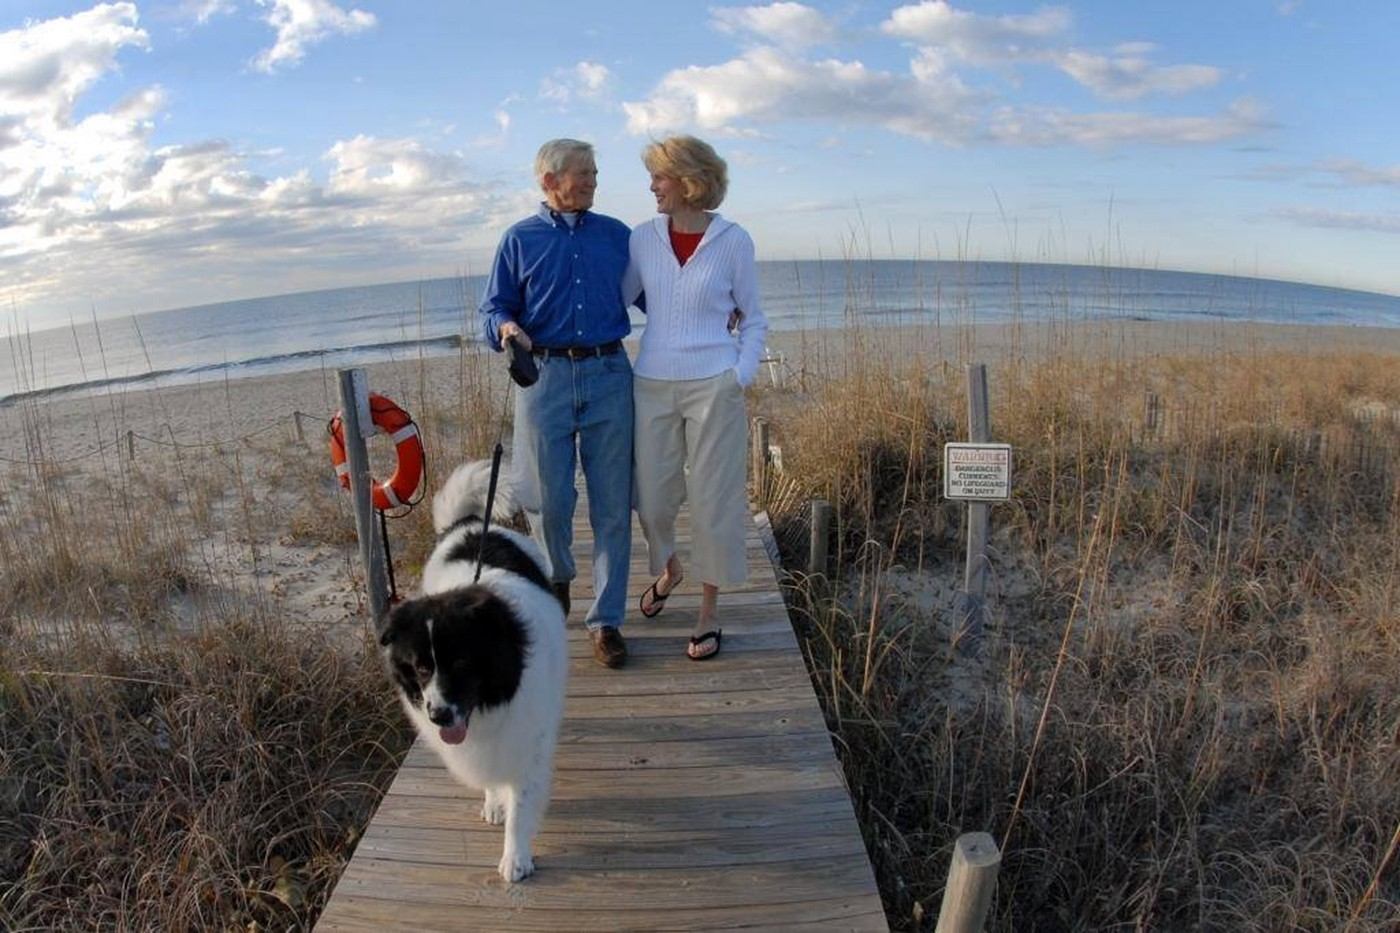 Enjoy miles of dog-friendly beaches on Bald Head Island.